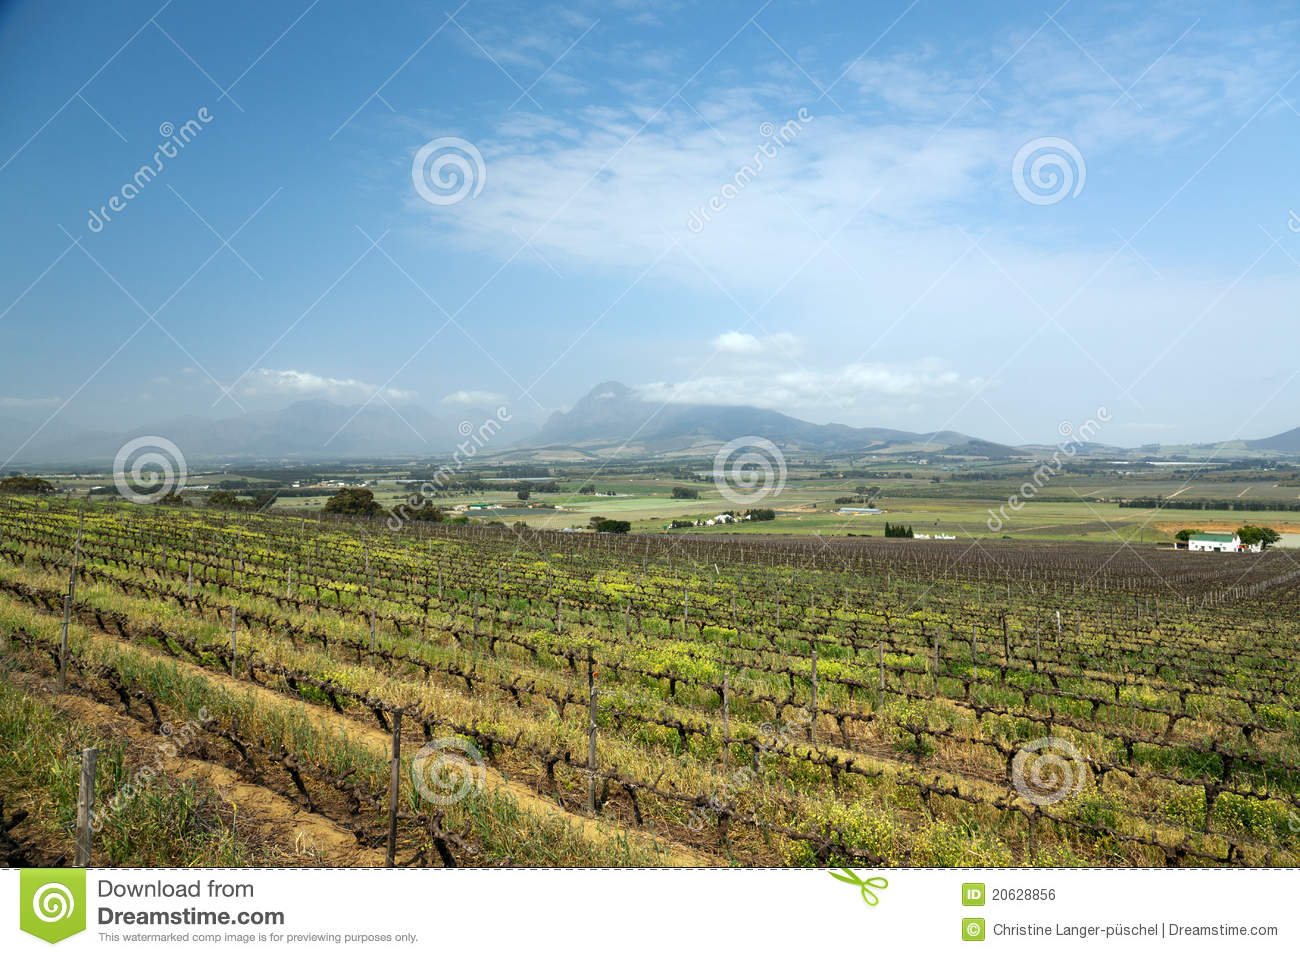 Vineyard or winery in south africa stock photo image for Jardin winery south africa